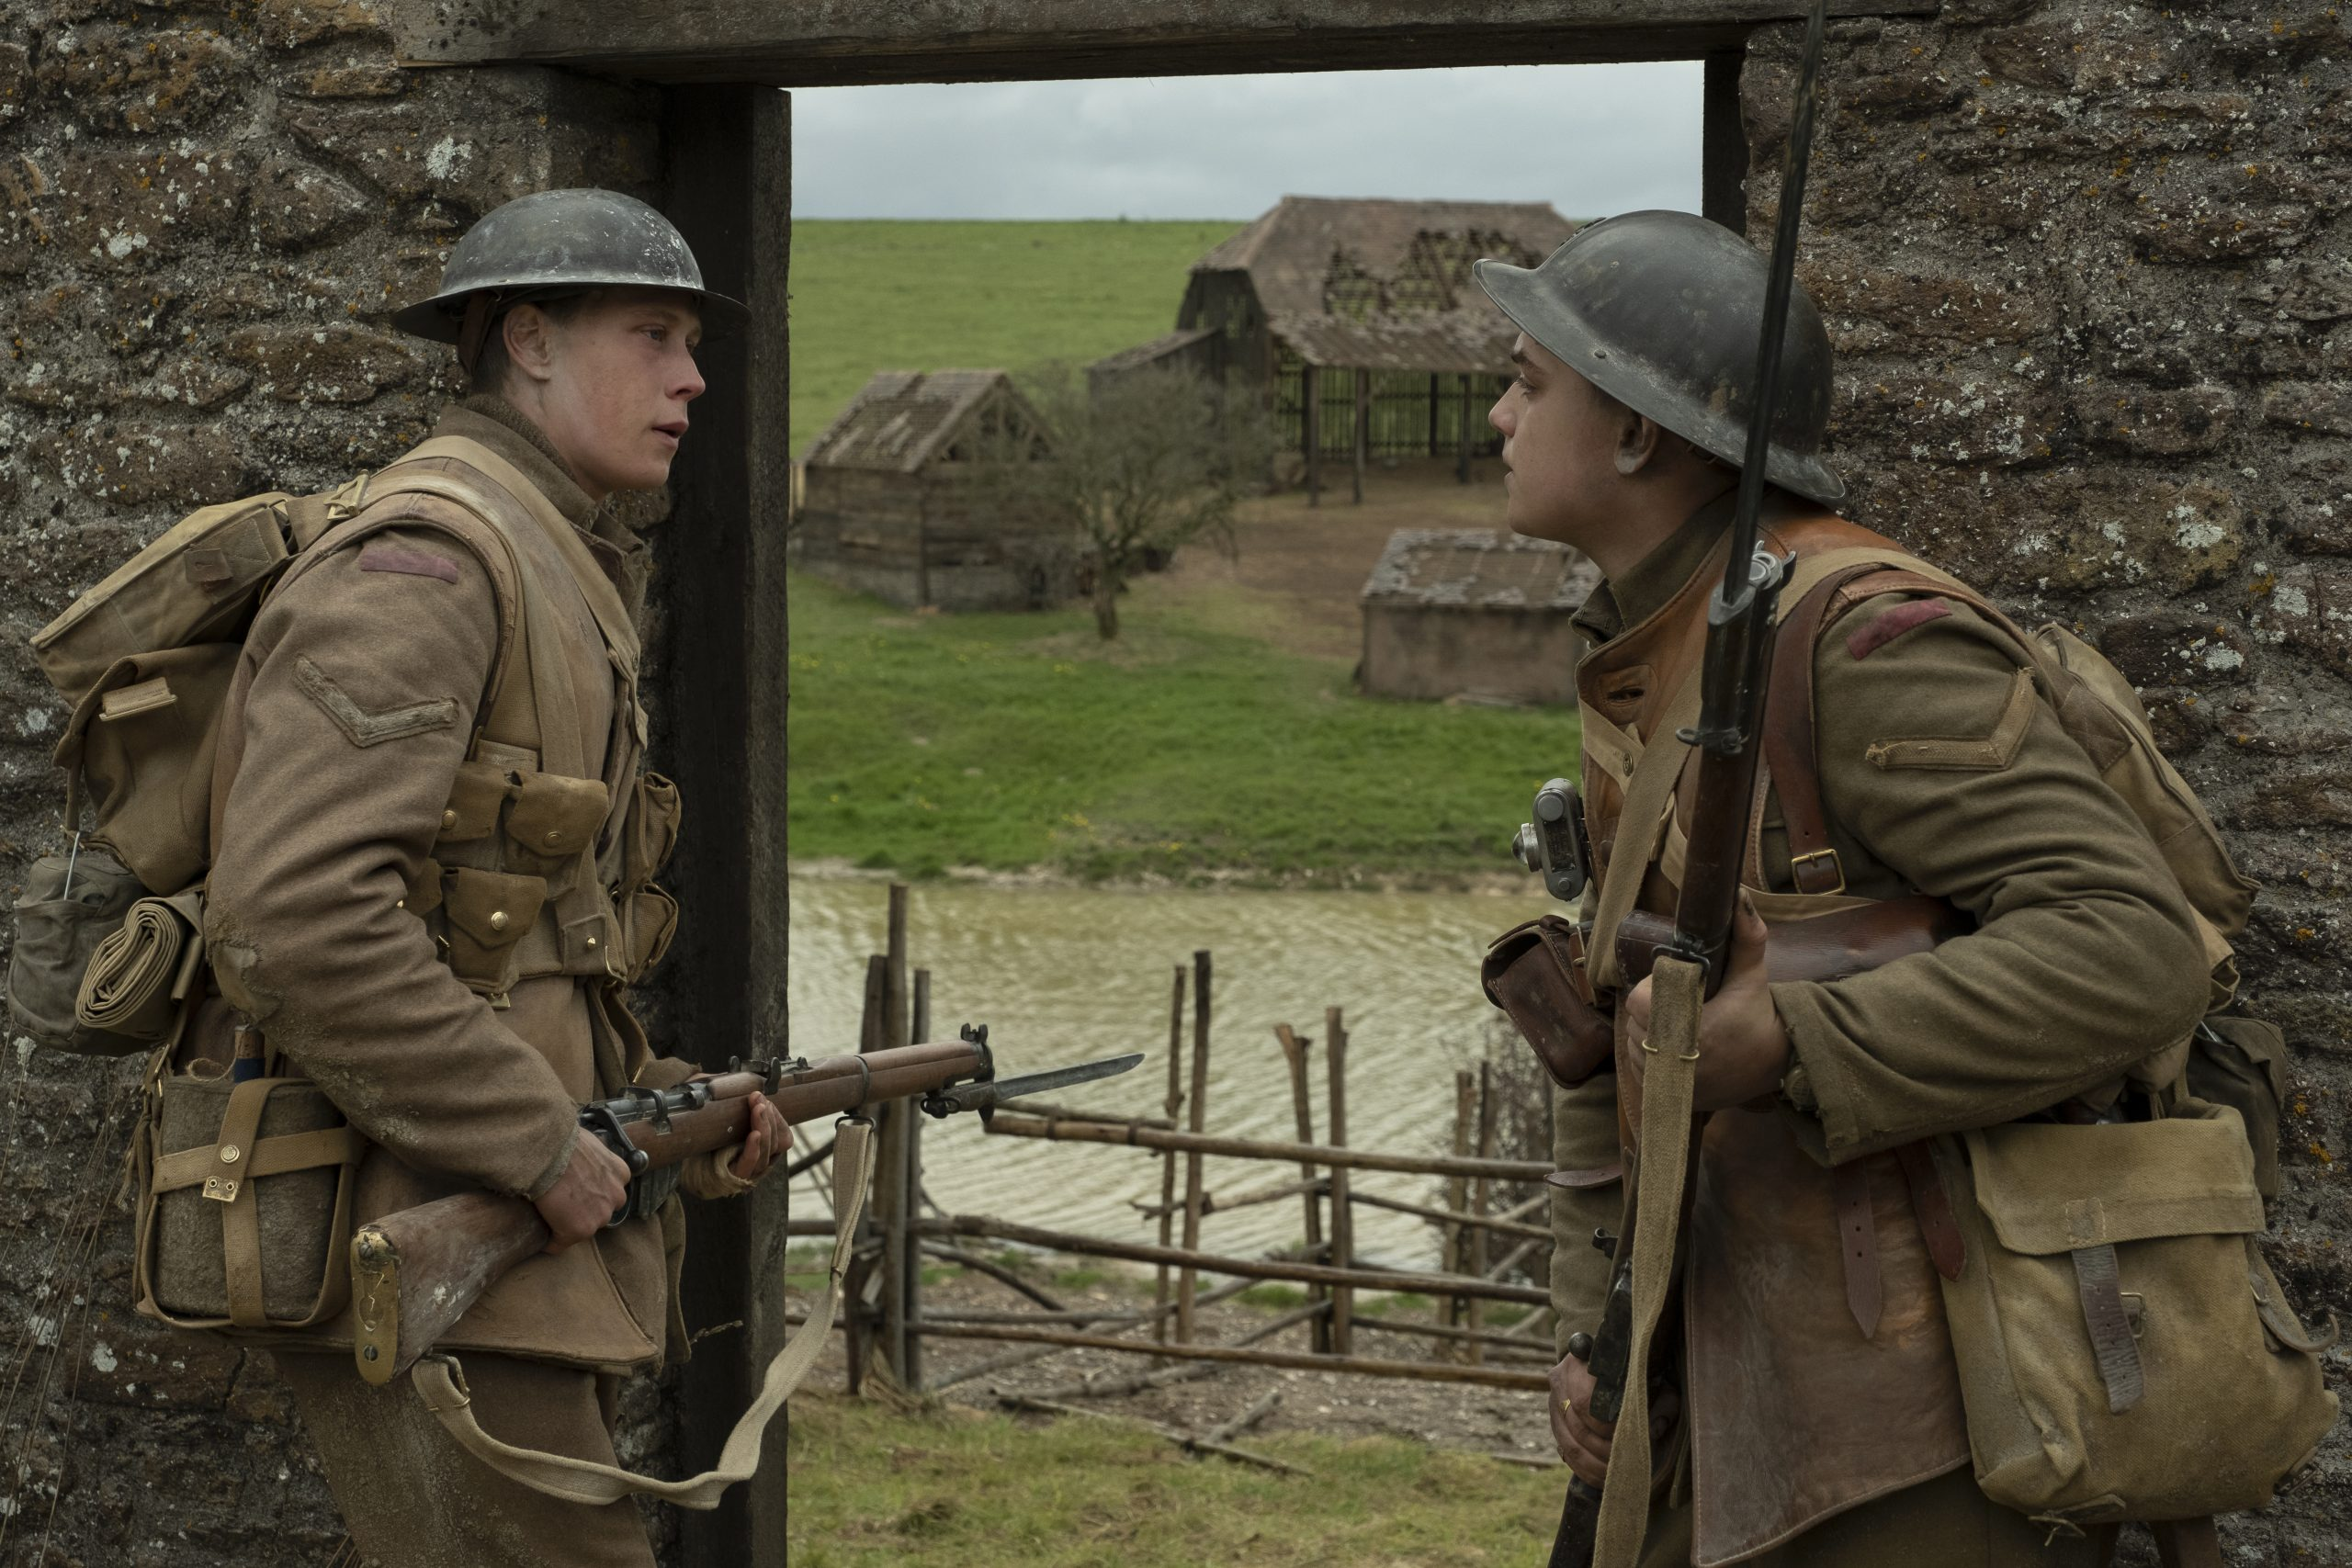 [Giveaway Alert] Enter for a Chance to Win a Blu-ray Copy of 1917